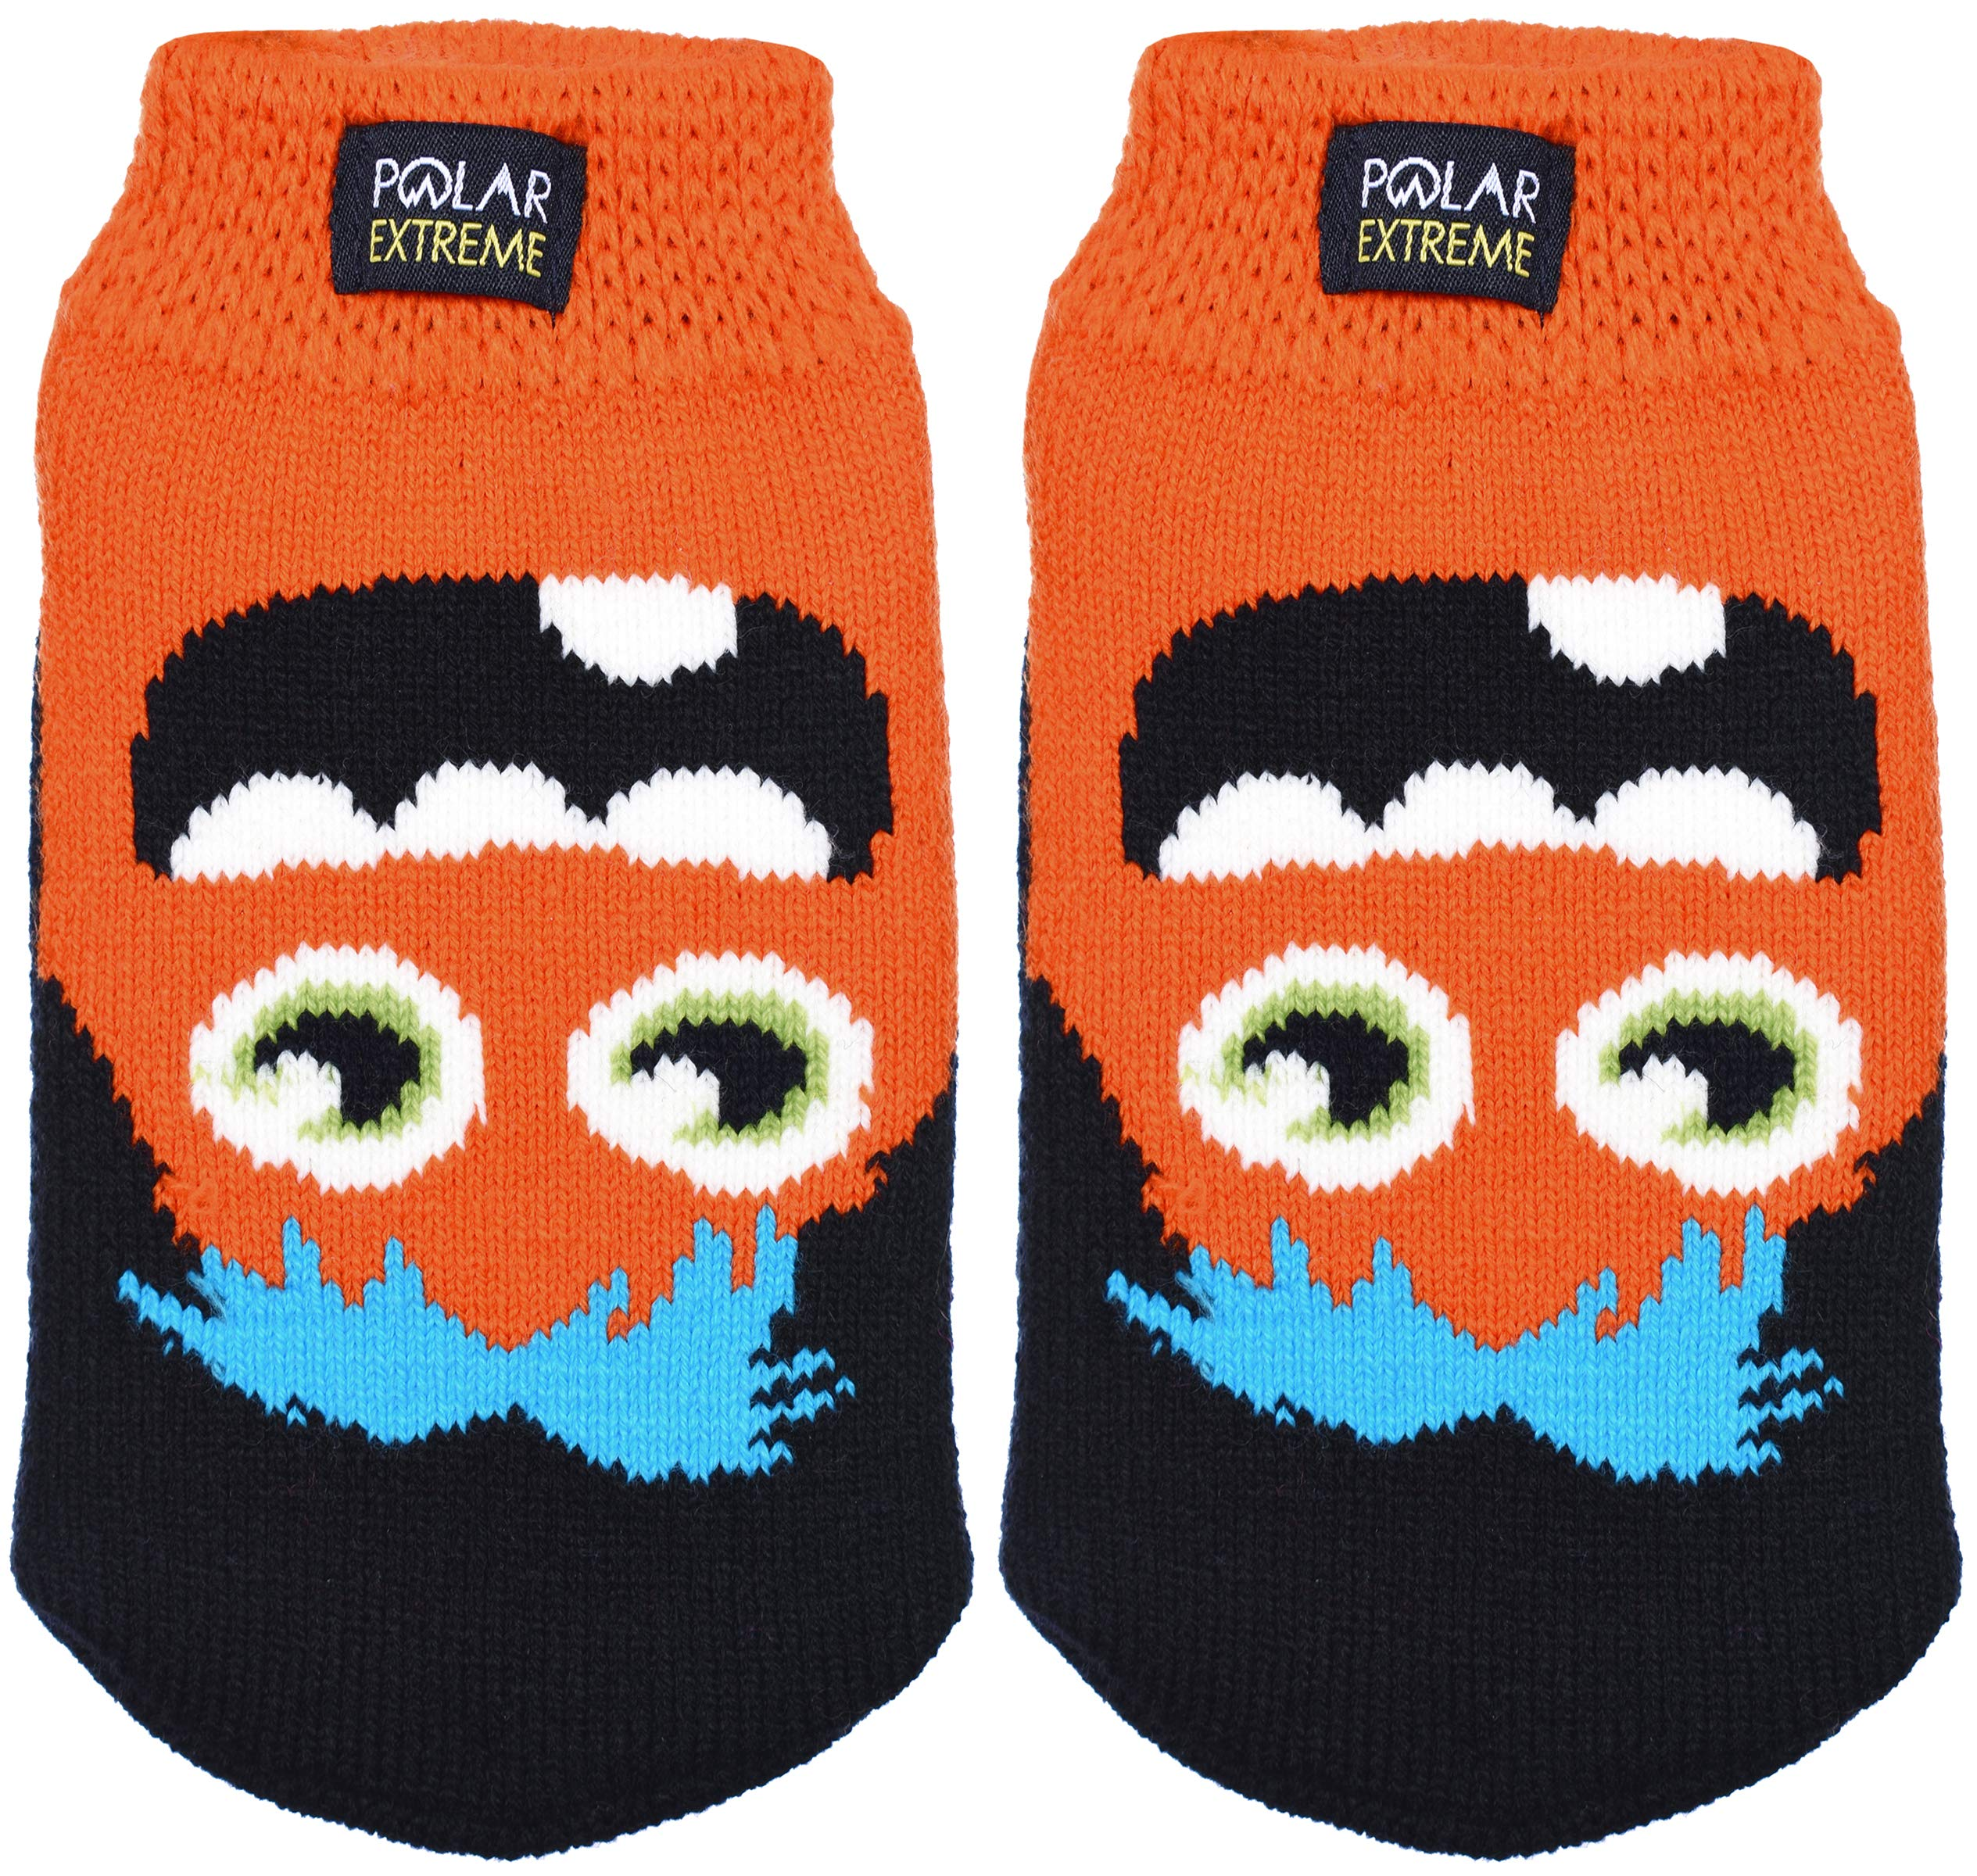 Boy's Insulated Thermal Knit Monster Socks with Gripper Dots in 4 Fun Styles (Chuck - Orange Black)